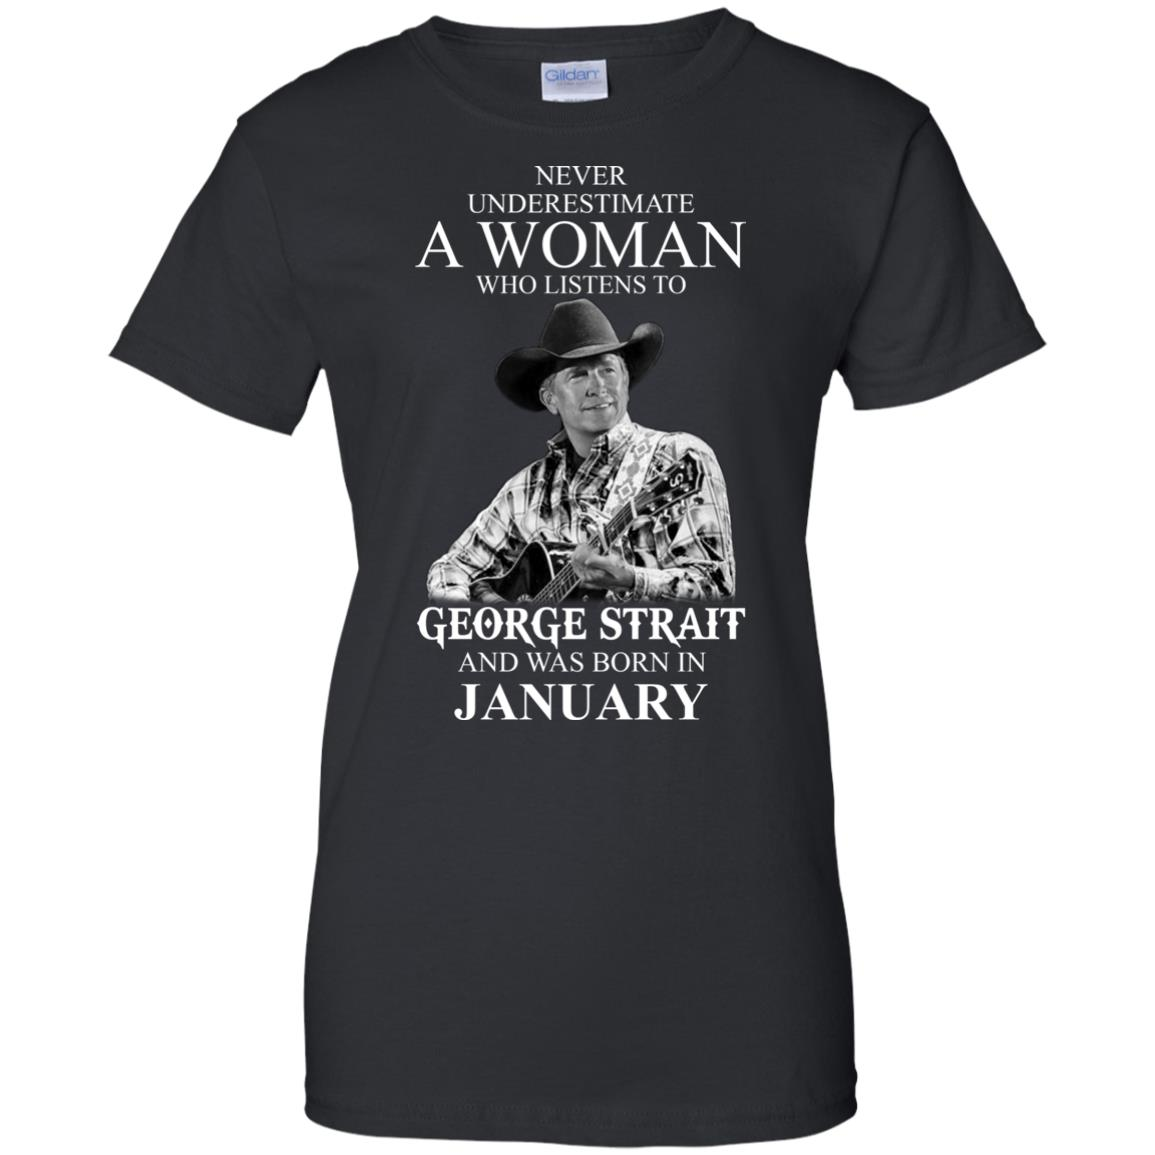 image 468 - Never Underestimate A Woman Who Listens To George Strait And Was Born In January shirt